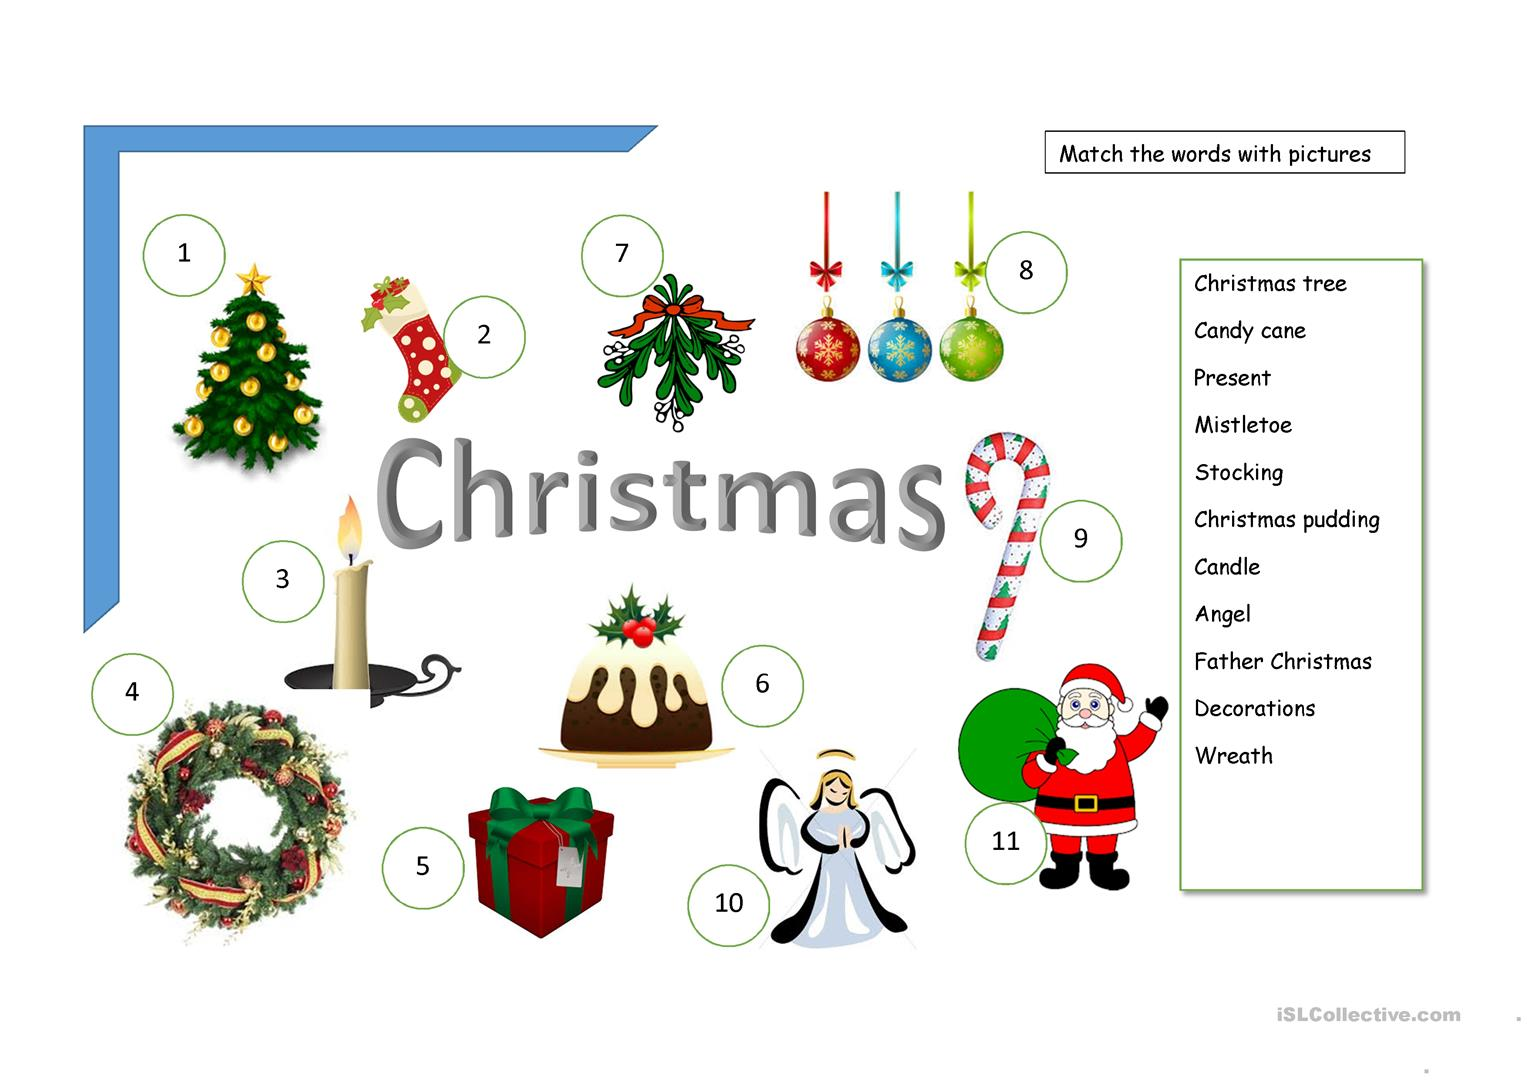 Christmas Decorations Vocabulary